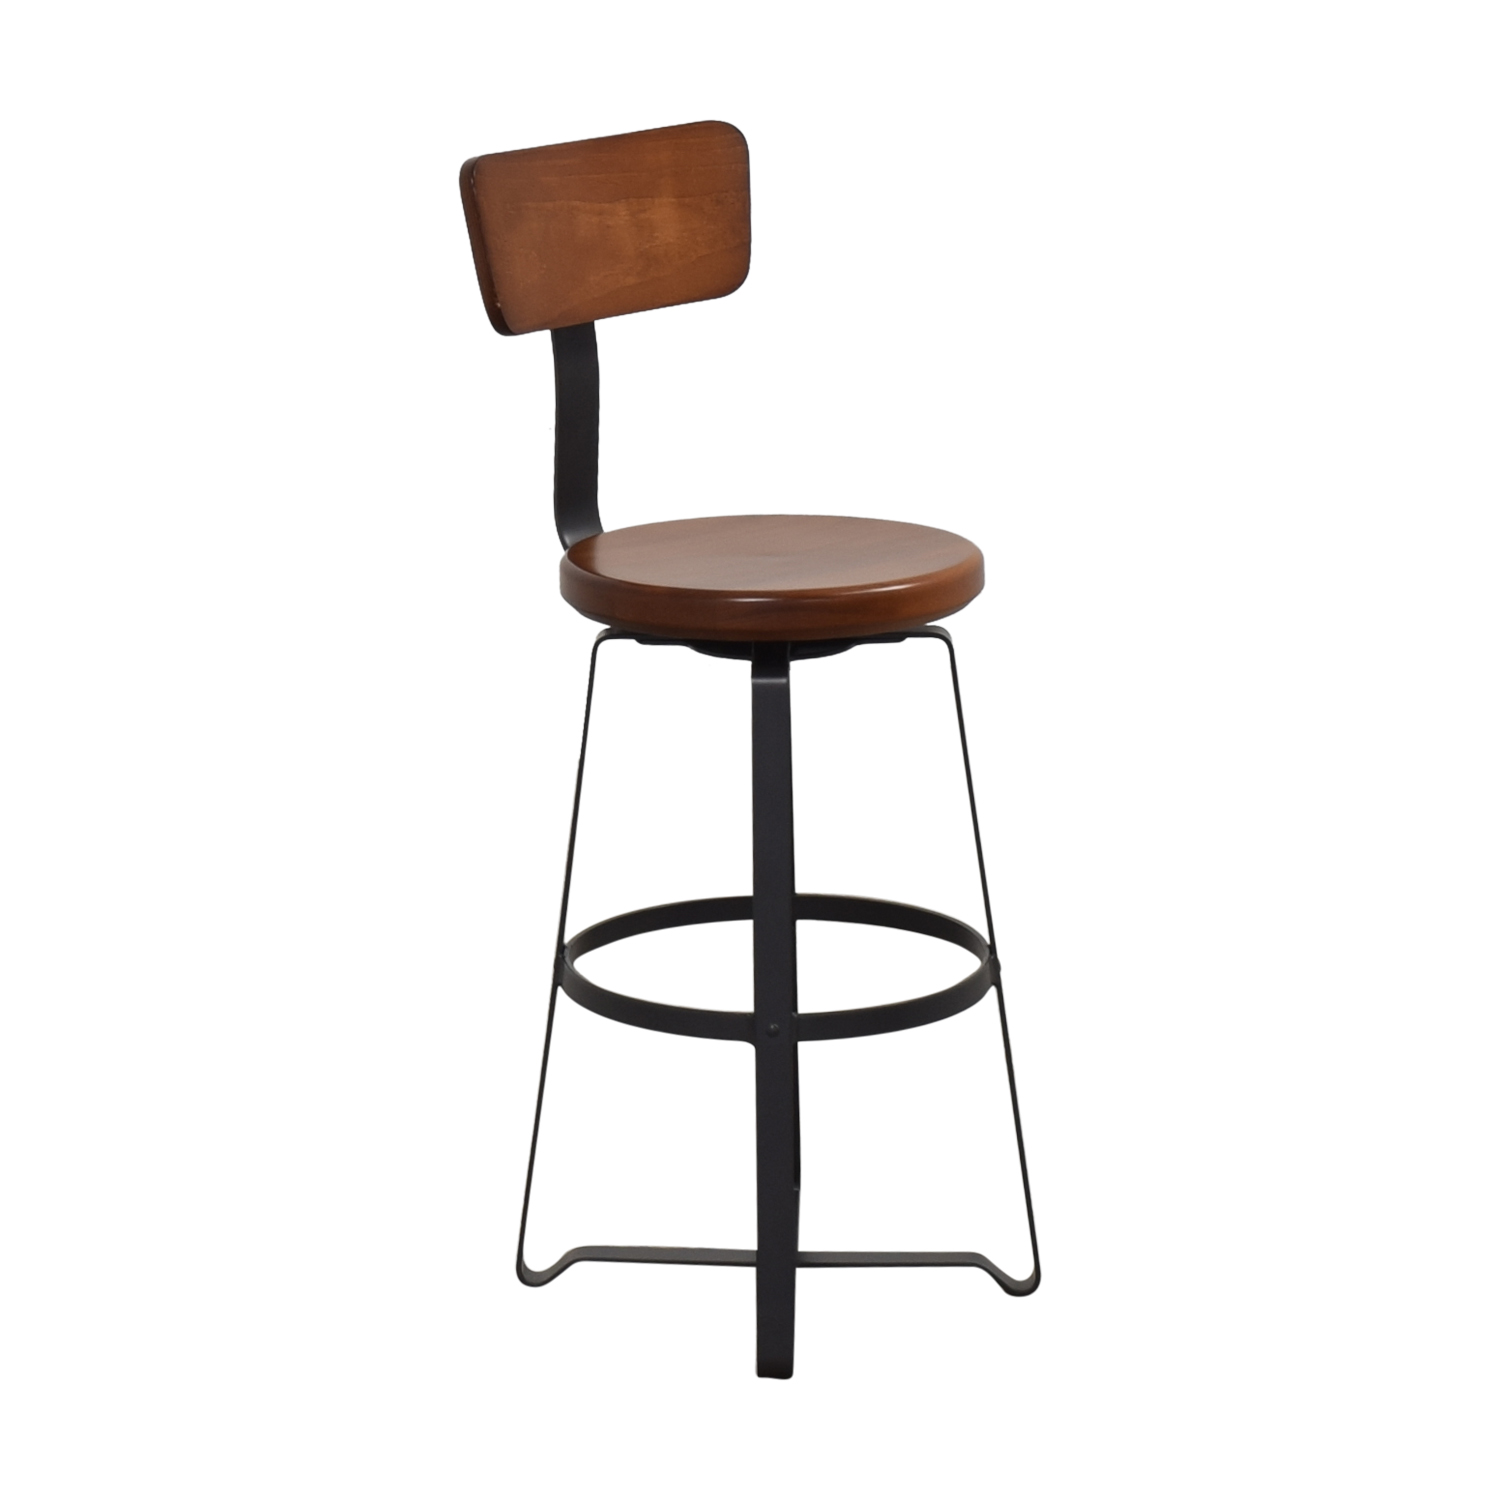 shop West Elm Adjustable Industrial Swivel Stool West Elm Chairs